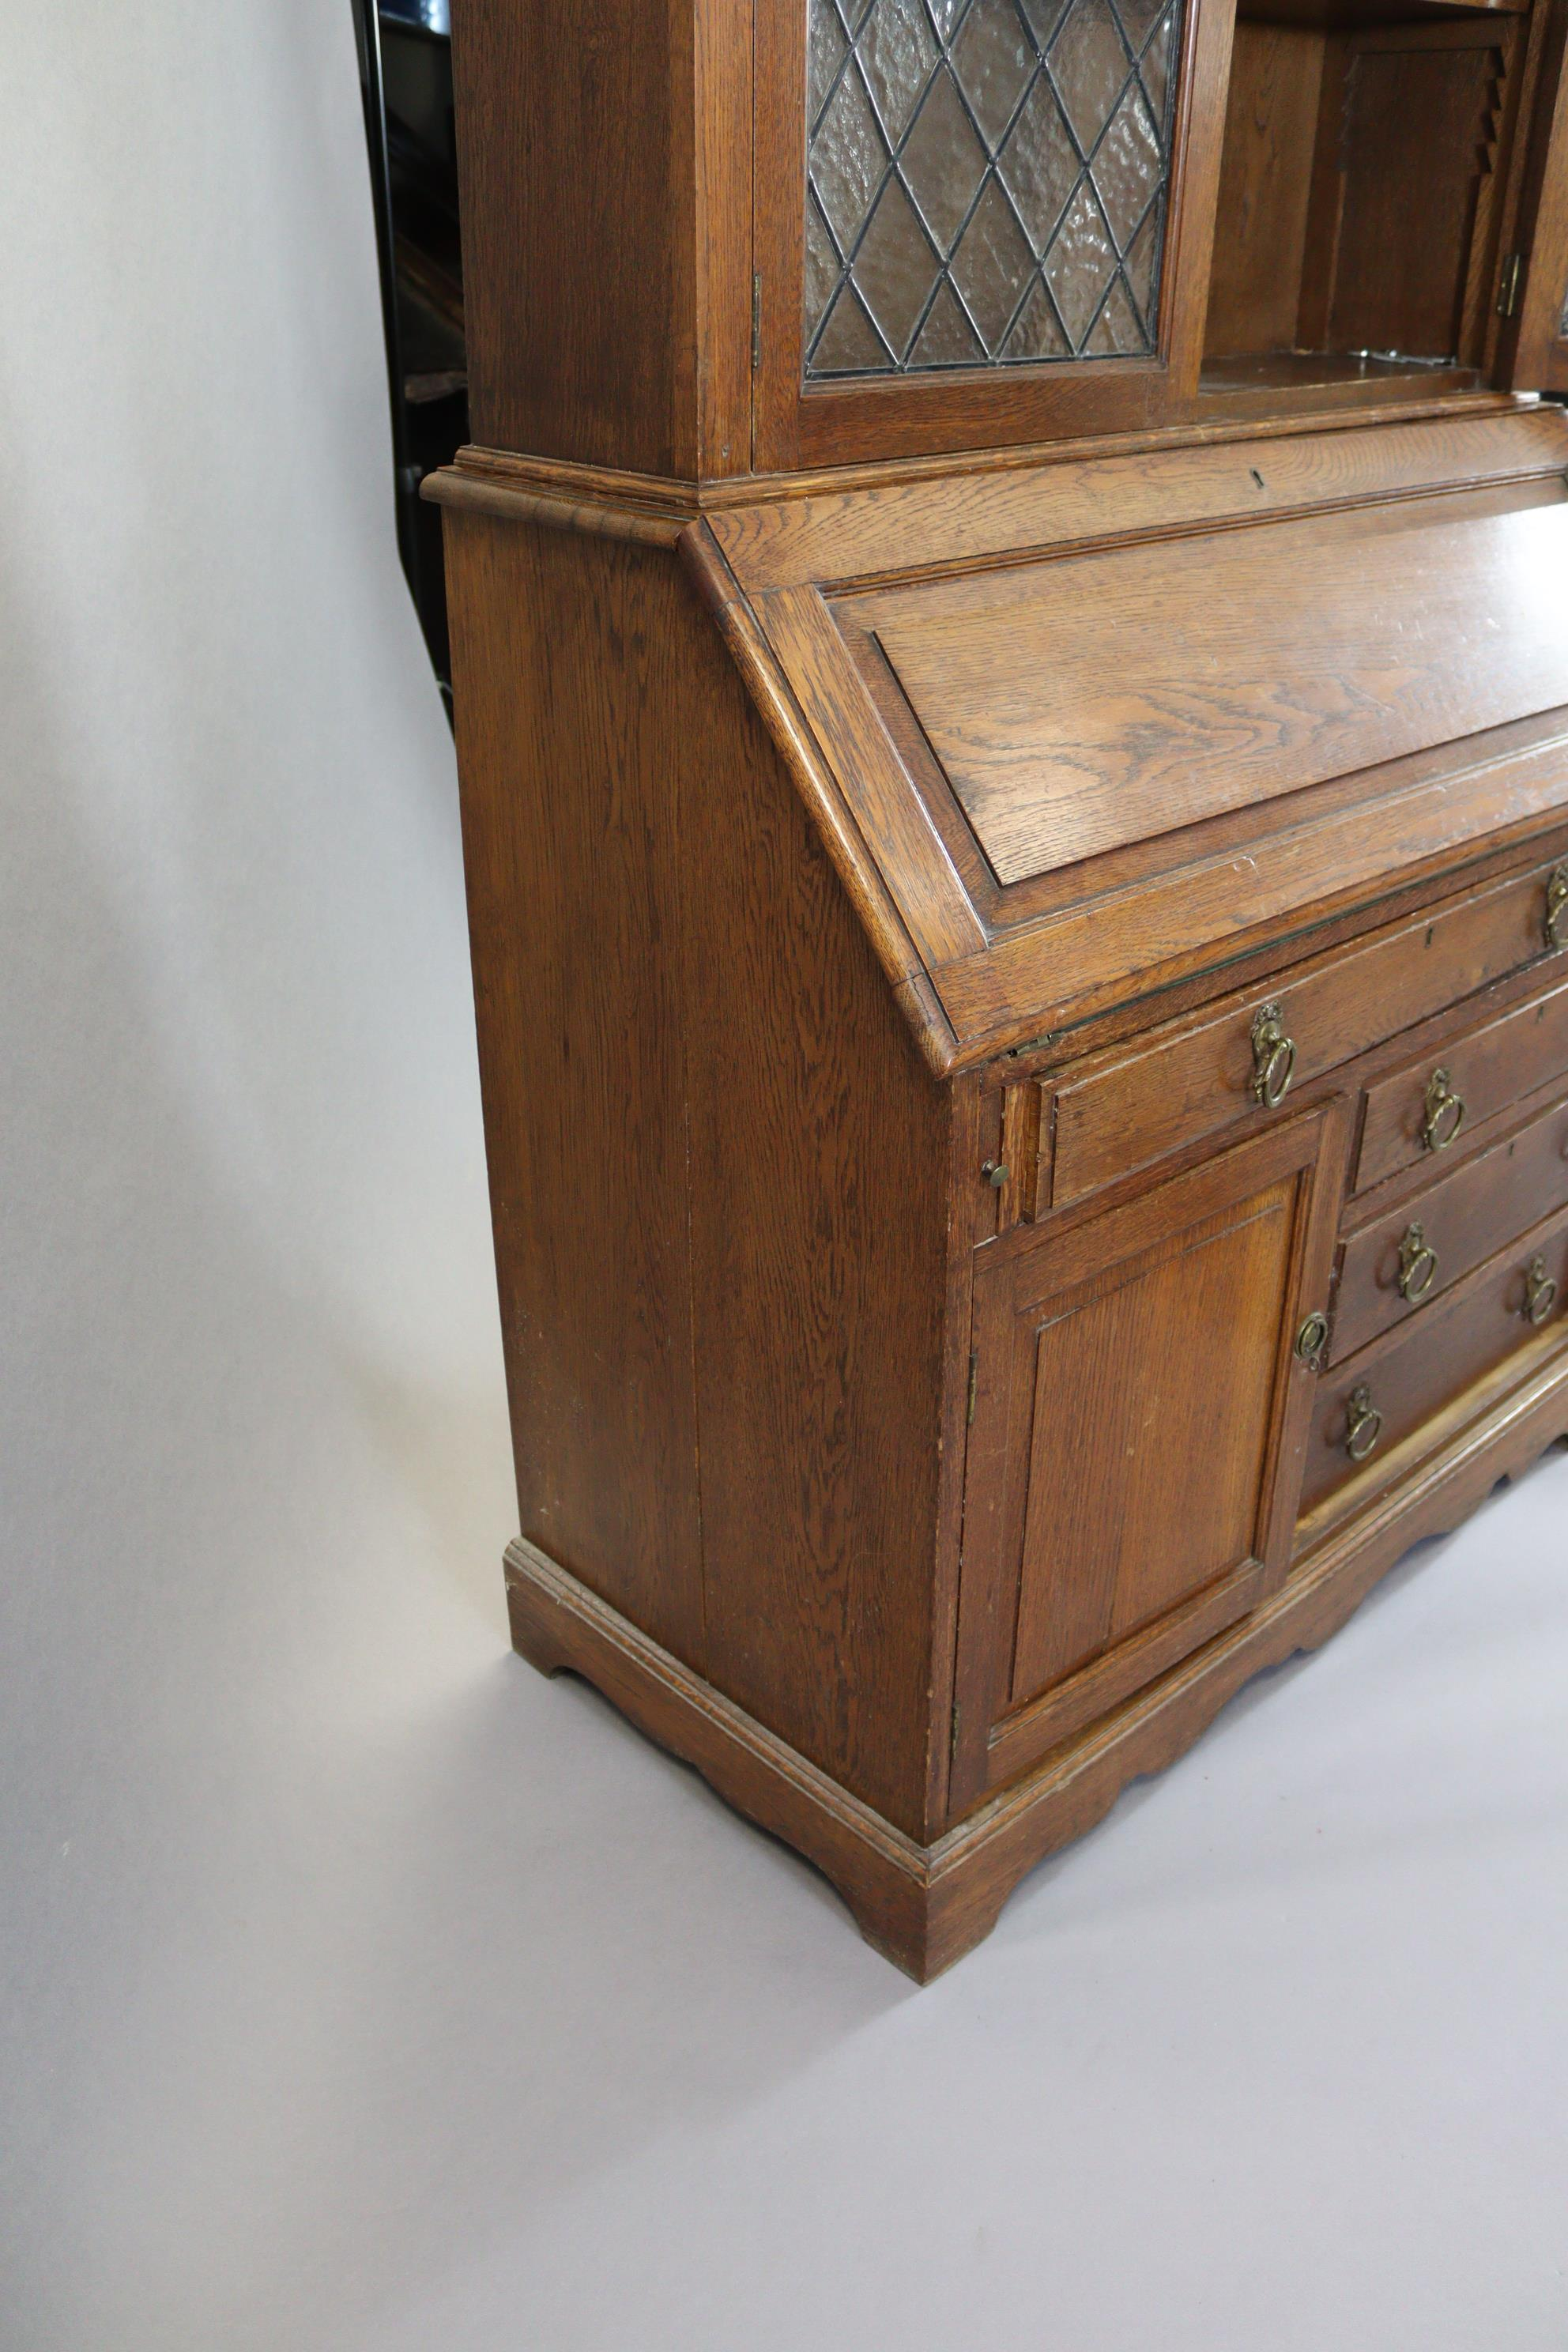 A late 19th/early 20th century oak bureau-bookcase with moulded cornice above a pair of leaded - Image 6 of 7